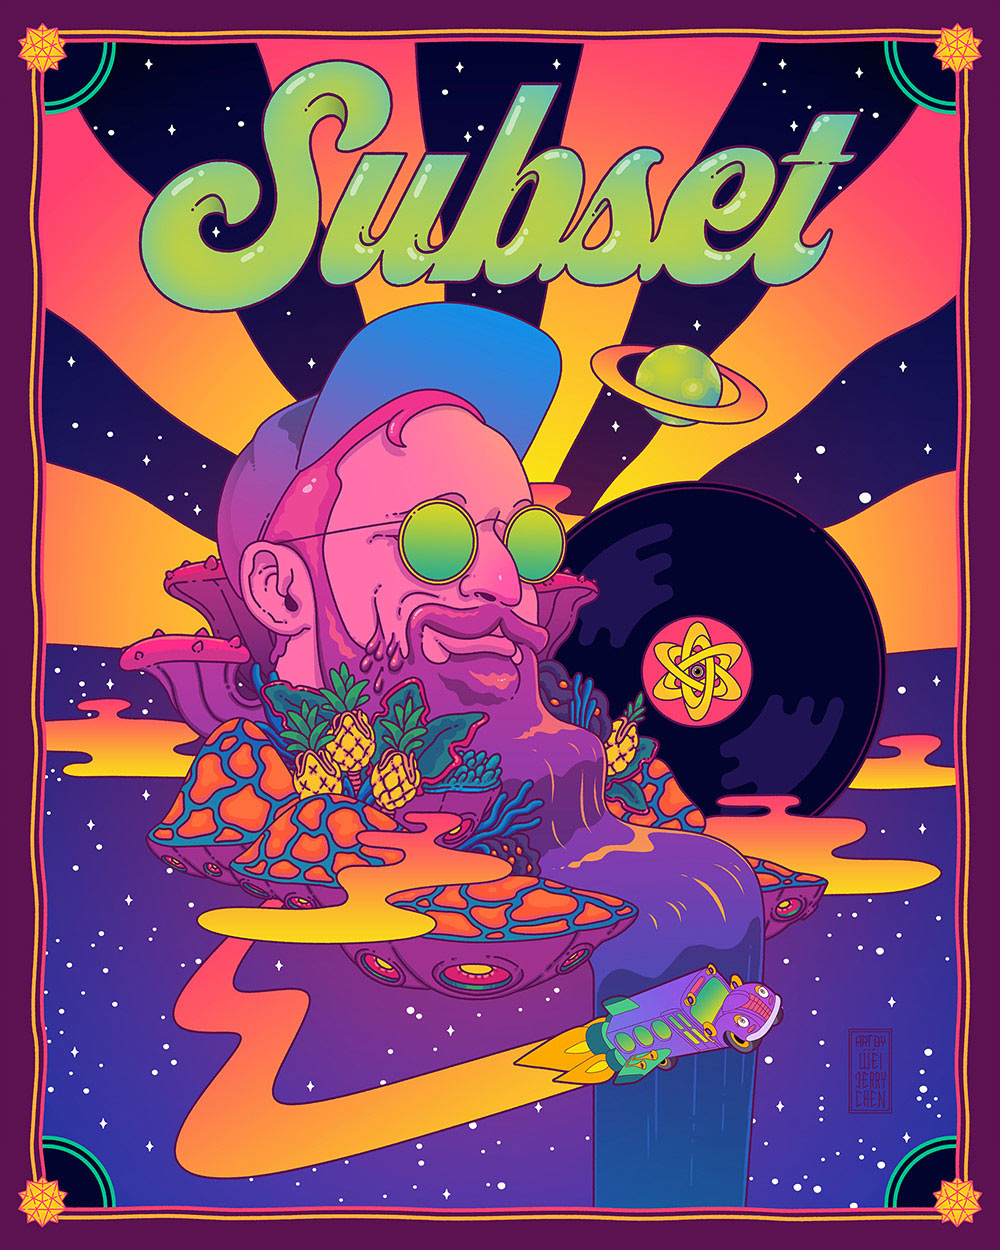 SUBSET_JAM-CRUISE-2018_WEIJERRYCHEN_POSTER-ART-ILLUSTRATION-TRIPPY-GROOVY-PSYCHEDELIC.jpg